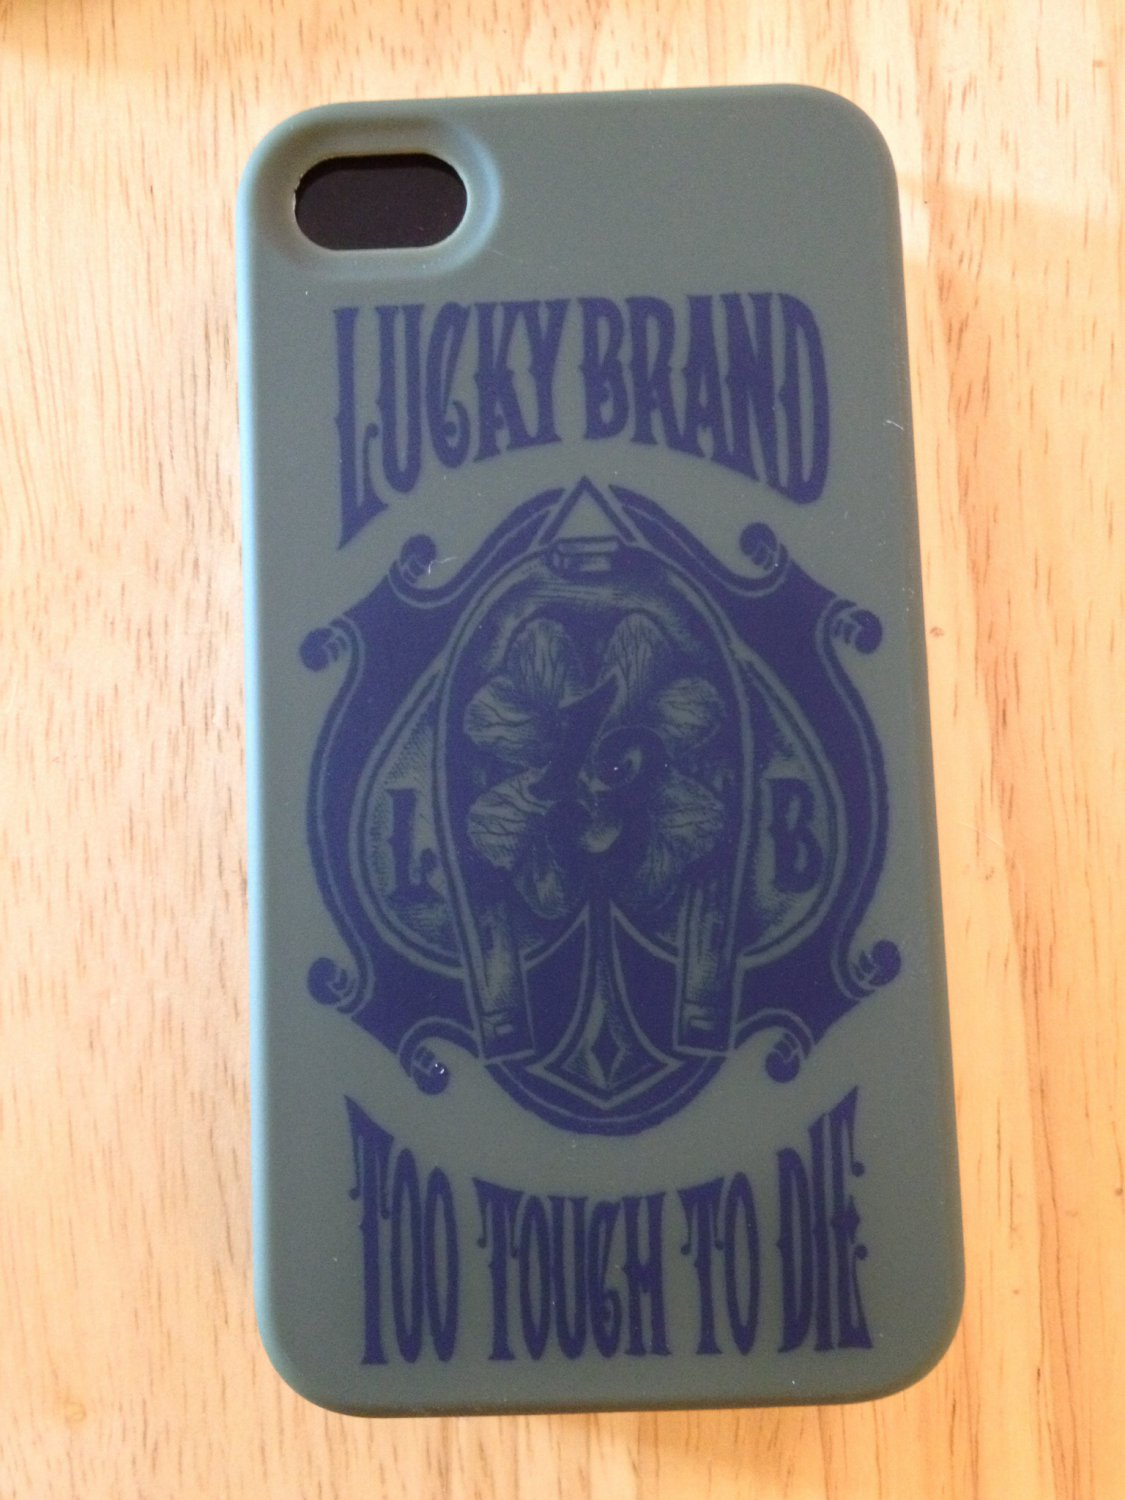 """Lucky Brand """"Too tough to die"""" case for iPhone 4 4s"""